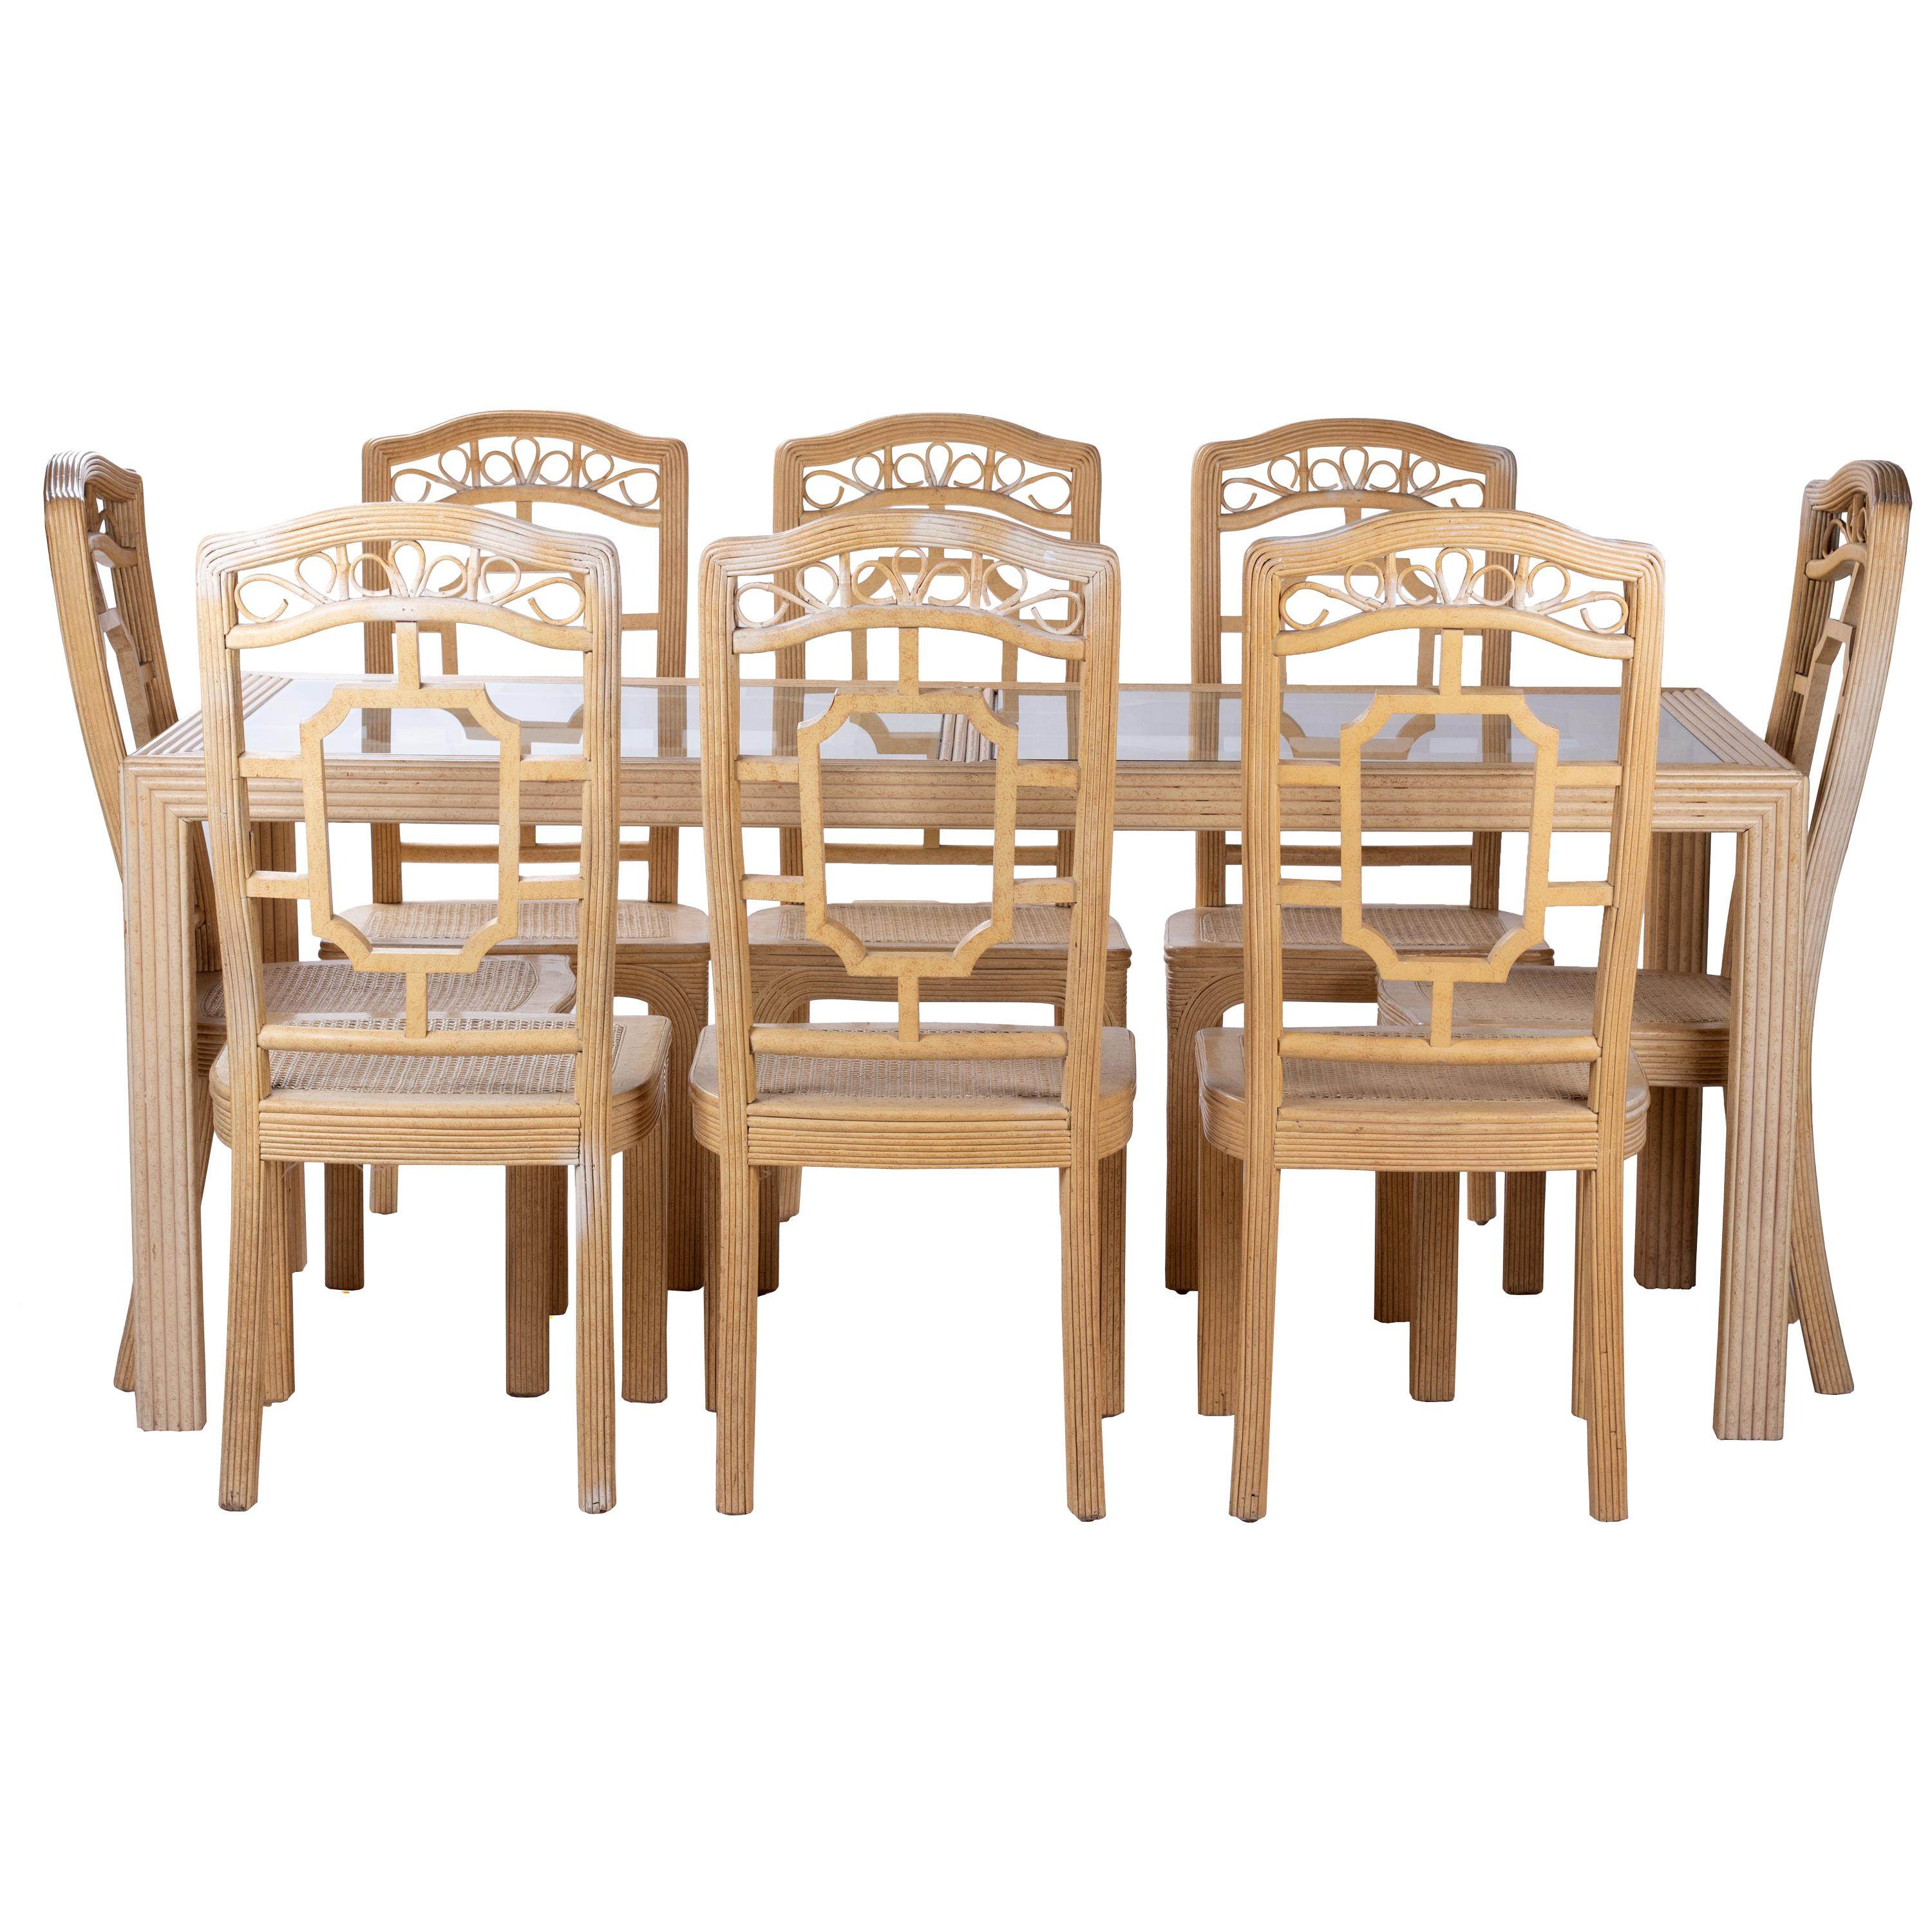 1970s English Harrod's Bamboo Oriental Style Eight Chair and Table Dining Set